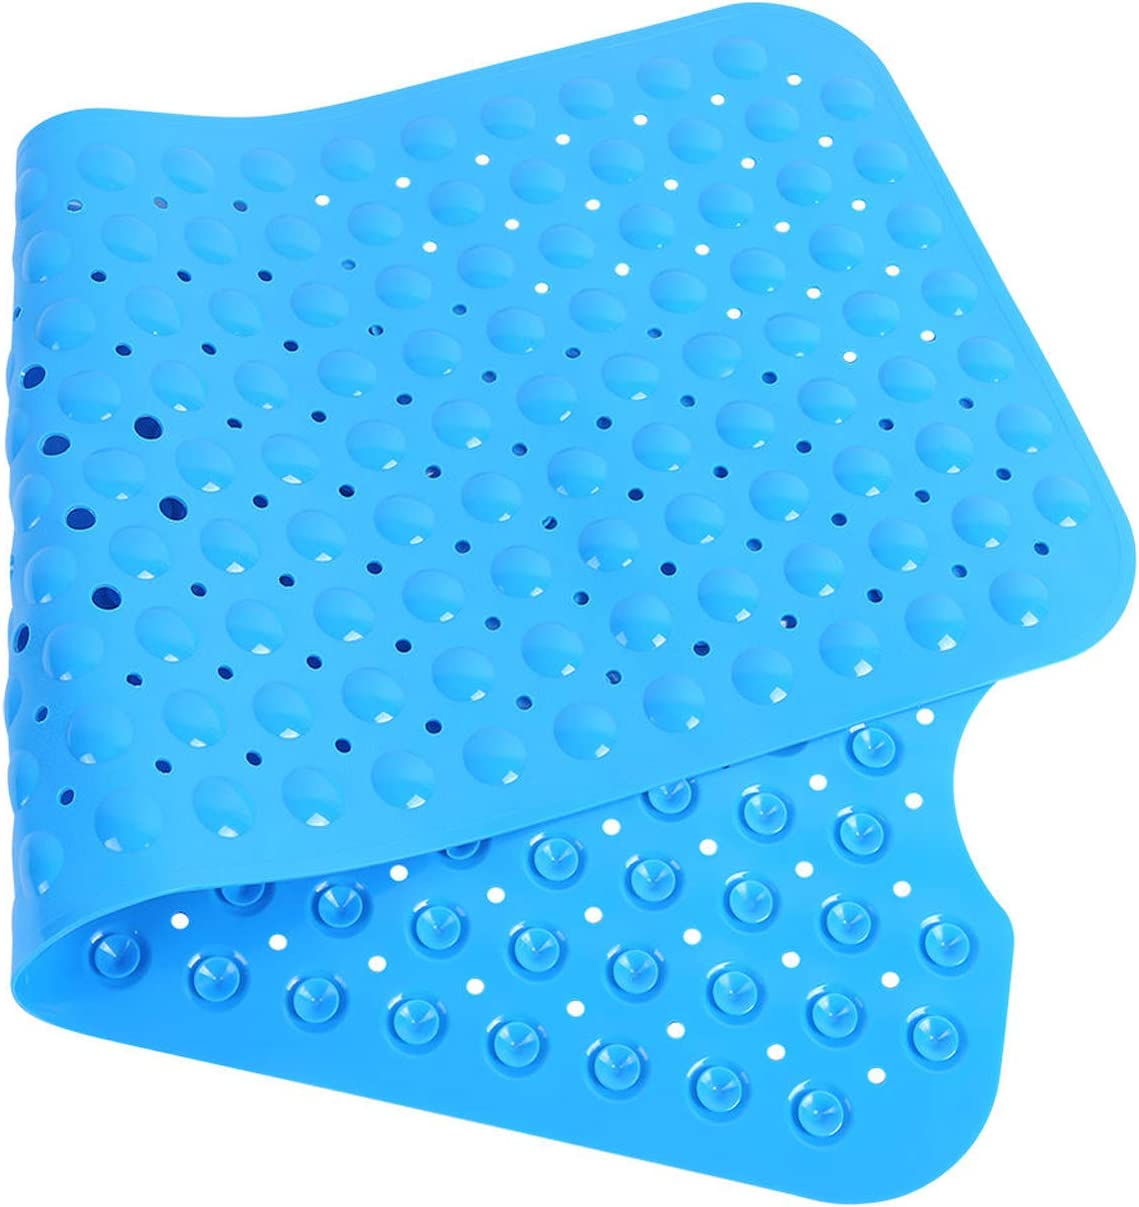 Rubber Tub Mat Quickly Dry /& Extra Large Bathtub For Kids Safety Long Shower Matting PVC Material With Non Slip Suction Cups Bath Mat Shower Mat Bath Mats Non Slip Anti Slip Bath Mat Kids